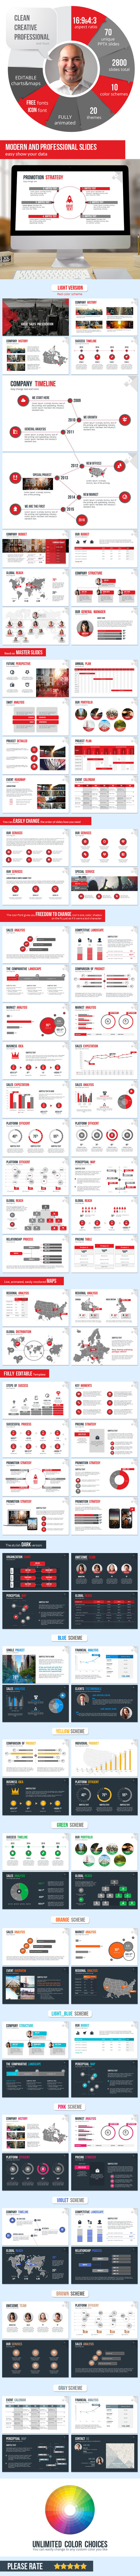 Sales powerpoint presentation template by sananik graphicriver sales powerpoint presentation template business powerpoint templates alramifo Choice Image